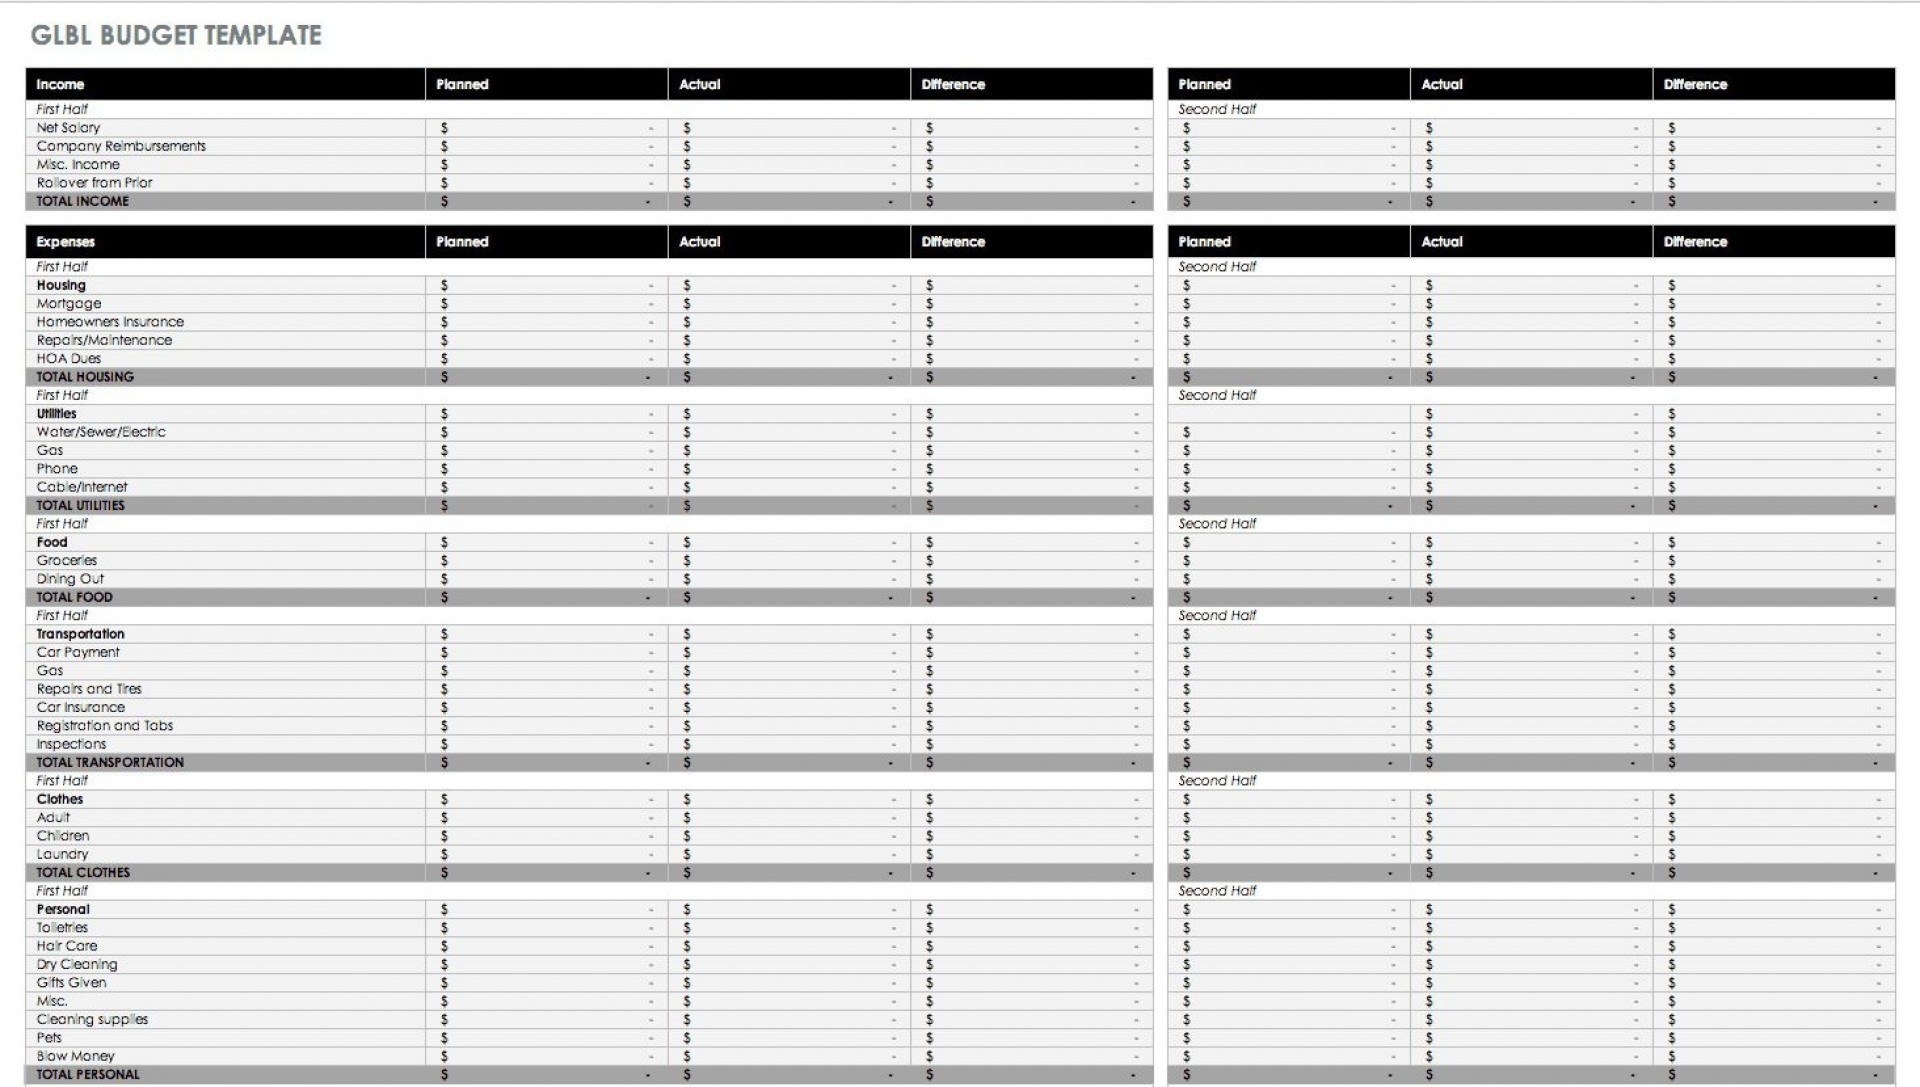 007 Unforgettable Blank Monthly Budget Sheet High Resolution  Sheets Free Printable Editable Template Personal Worksheet1920